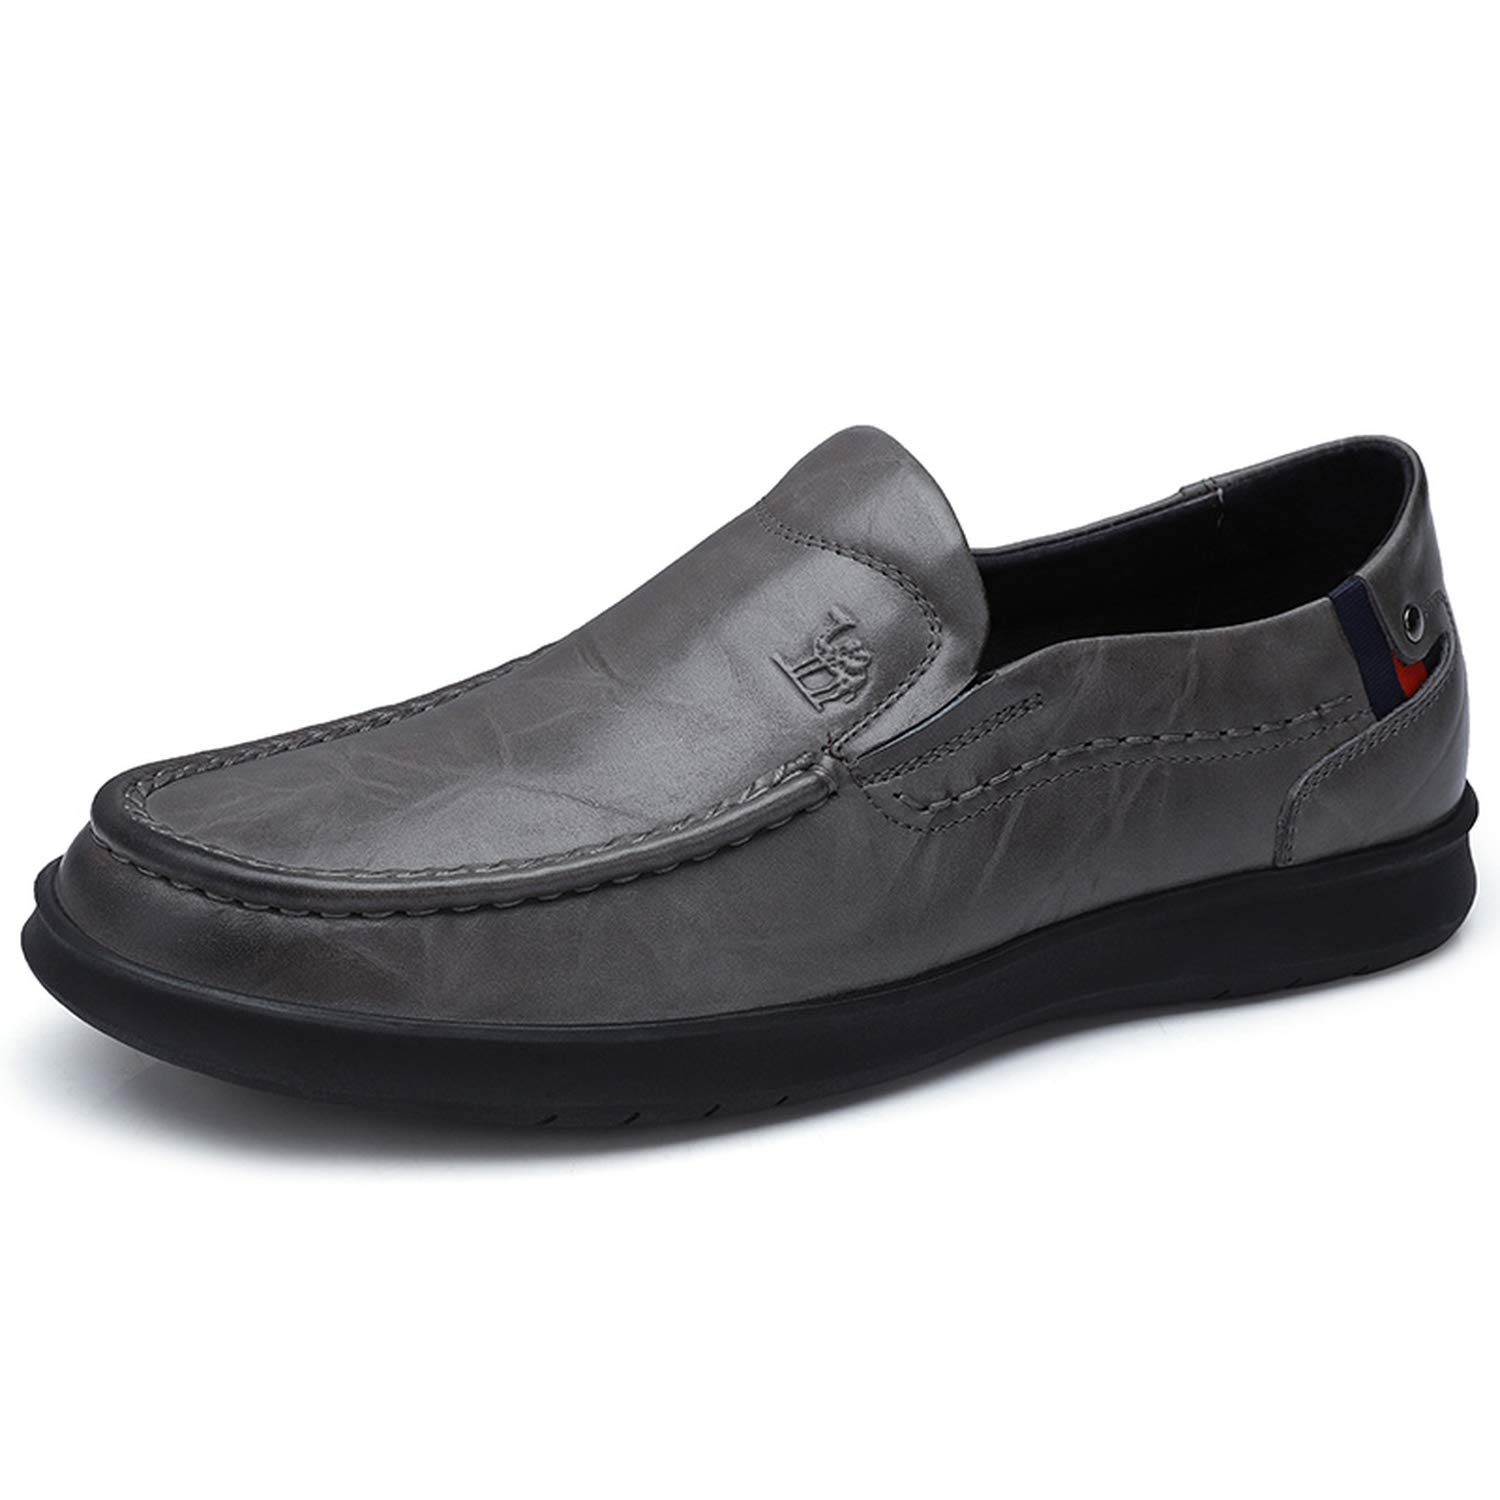 Mens Shoes Genuine Leather Shoes Men Loafers Retro Trend Casual Business Male Flats